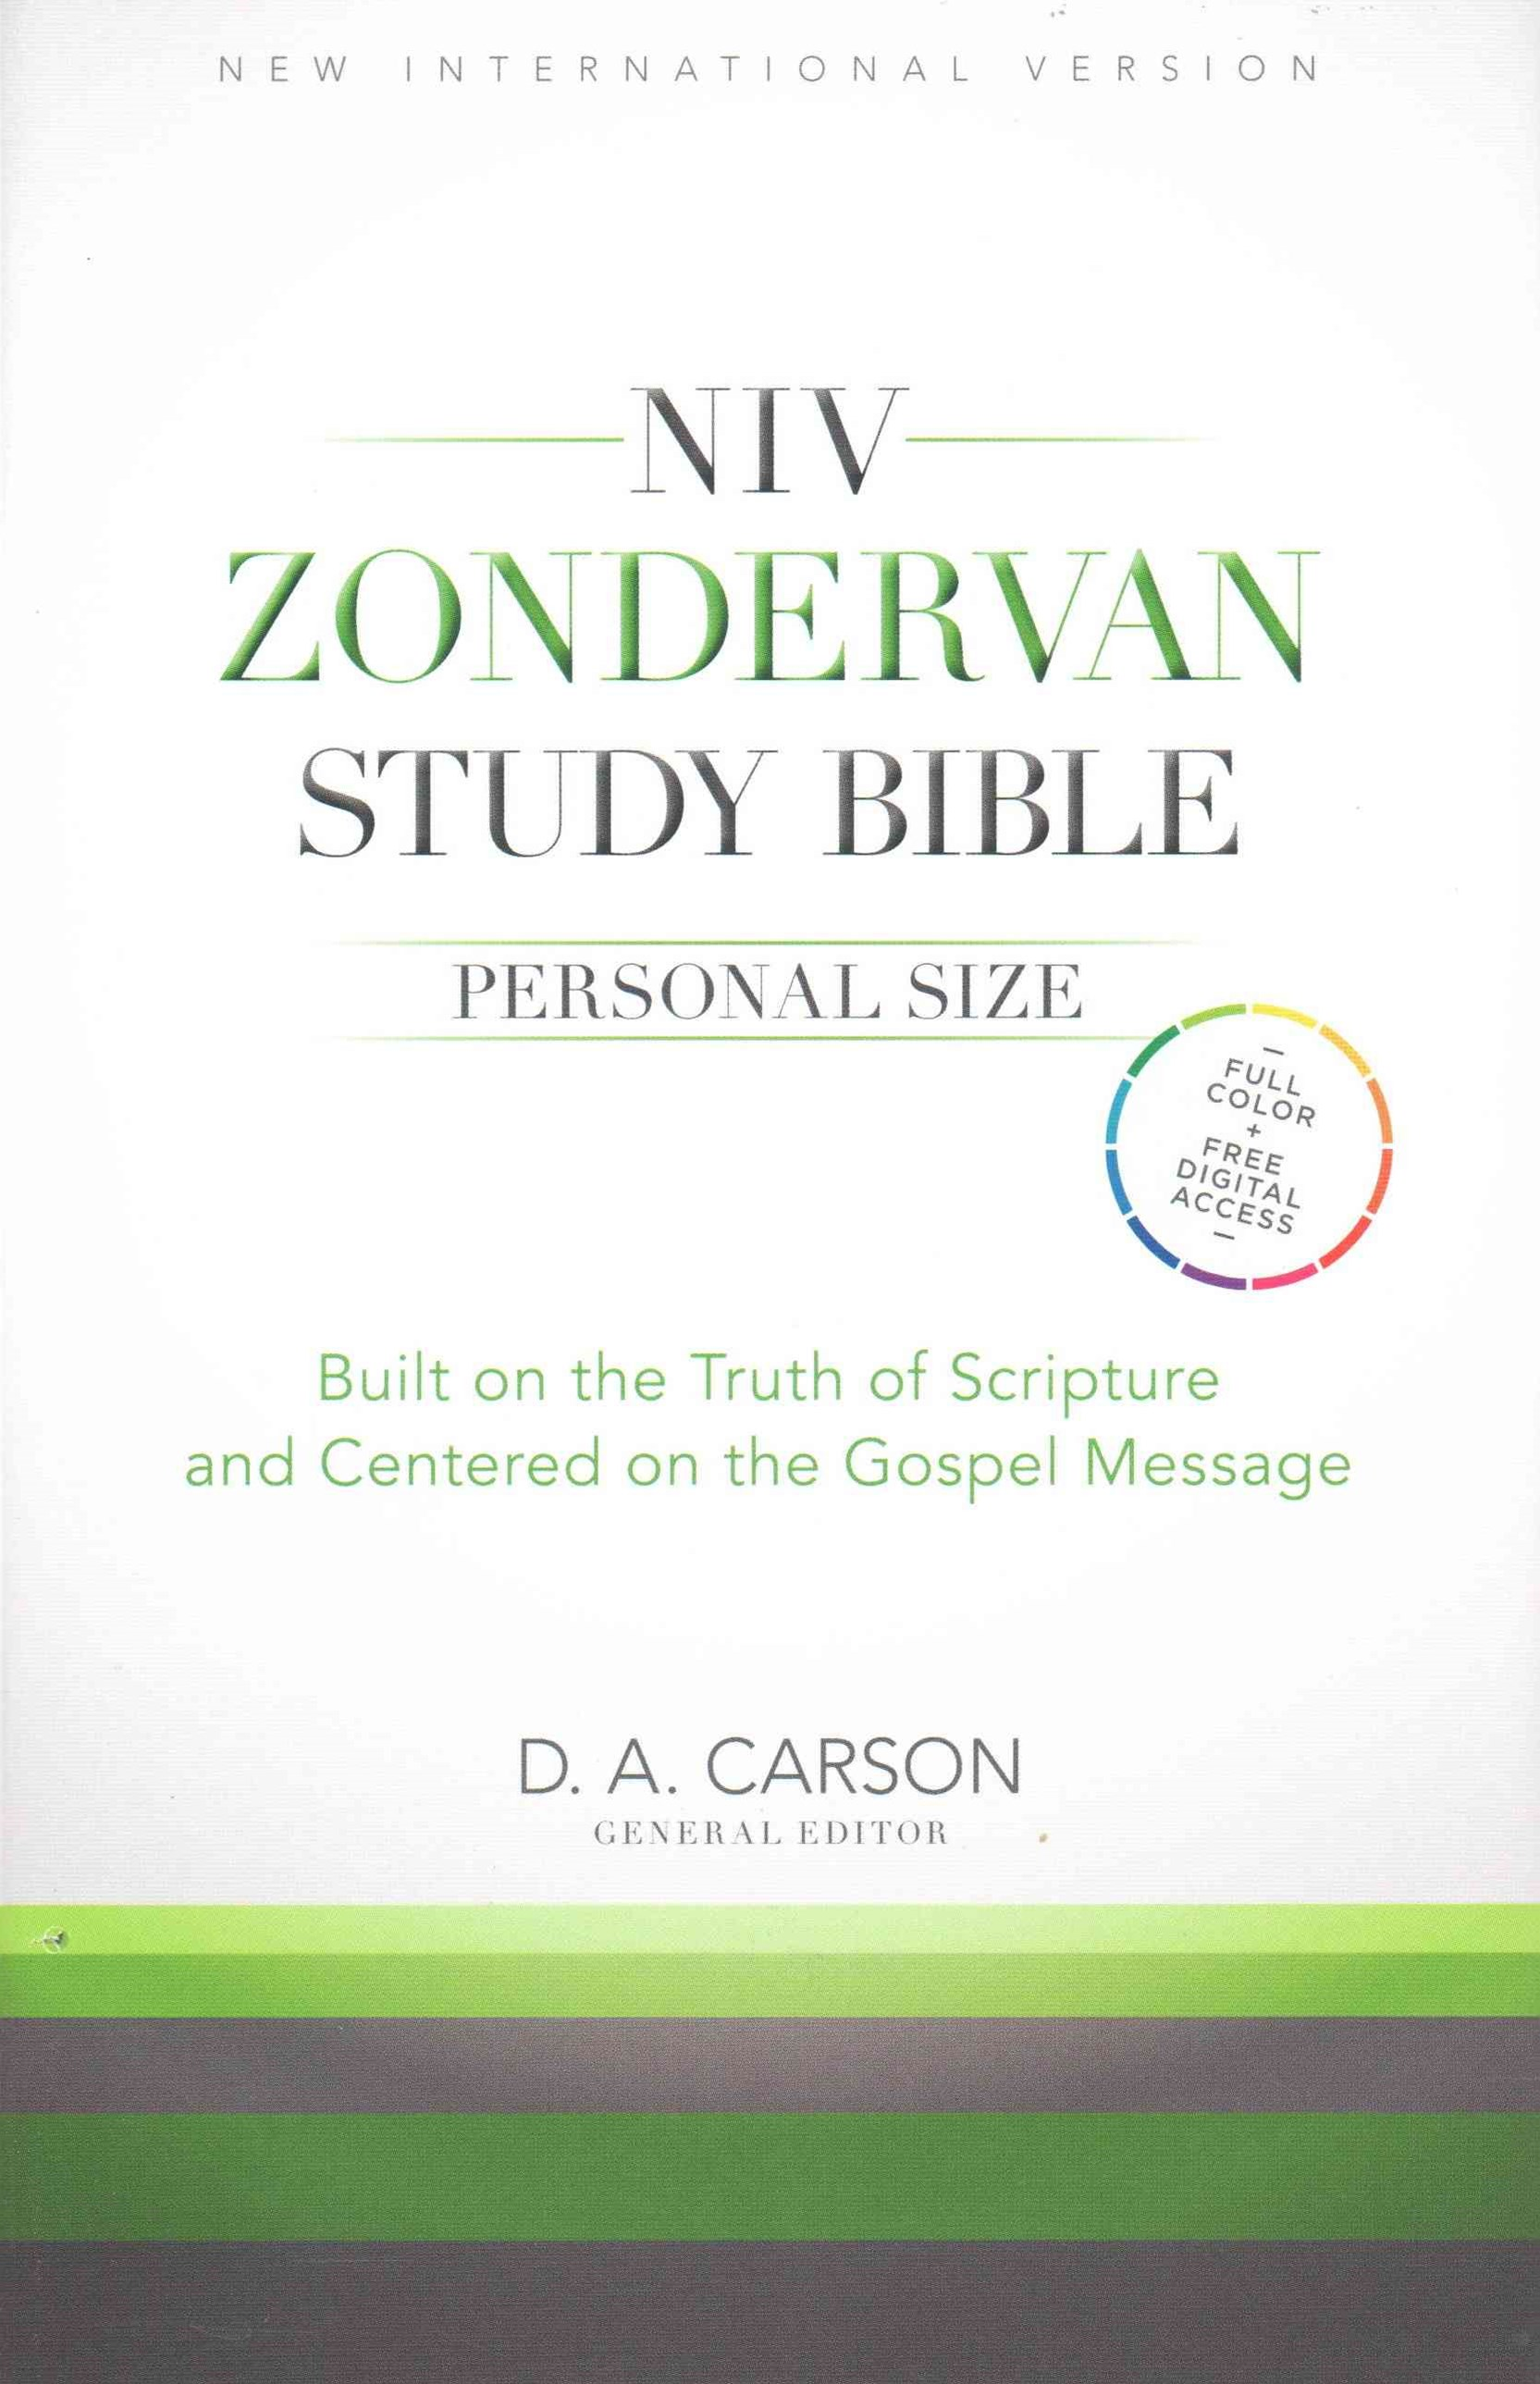 NIV Zondervan Study Bible, Personal Size: Built on the Truth of Scripture and Centered on the Gospel